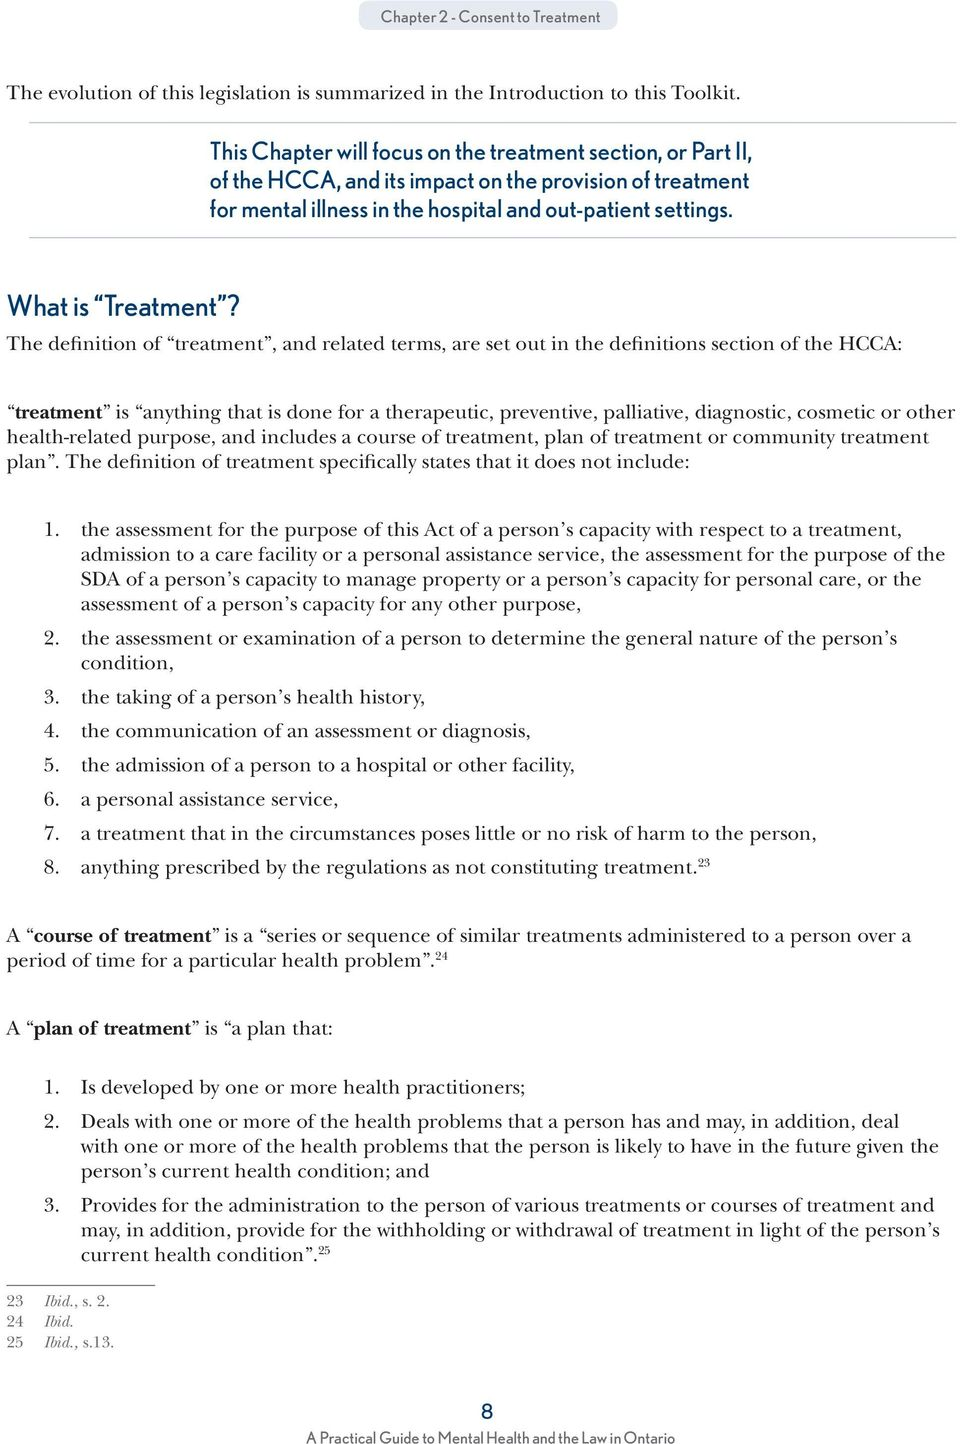 The definition of treatment, and related terms, are set out in the definitions section of the HCCA: treatment is anything that is done for a therapeutic, preventive, palliative, diagnostic, cosmetic